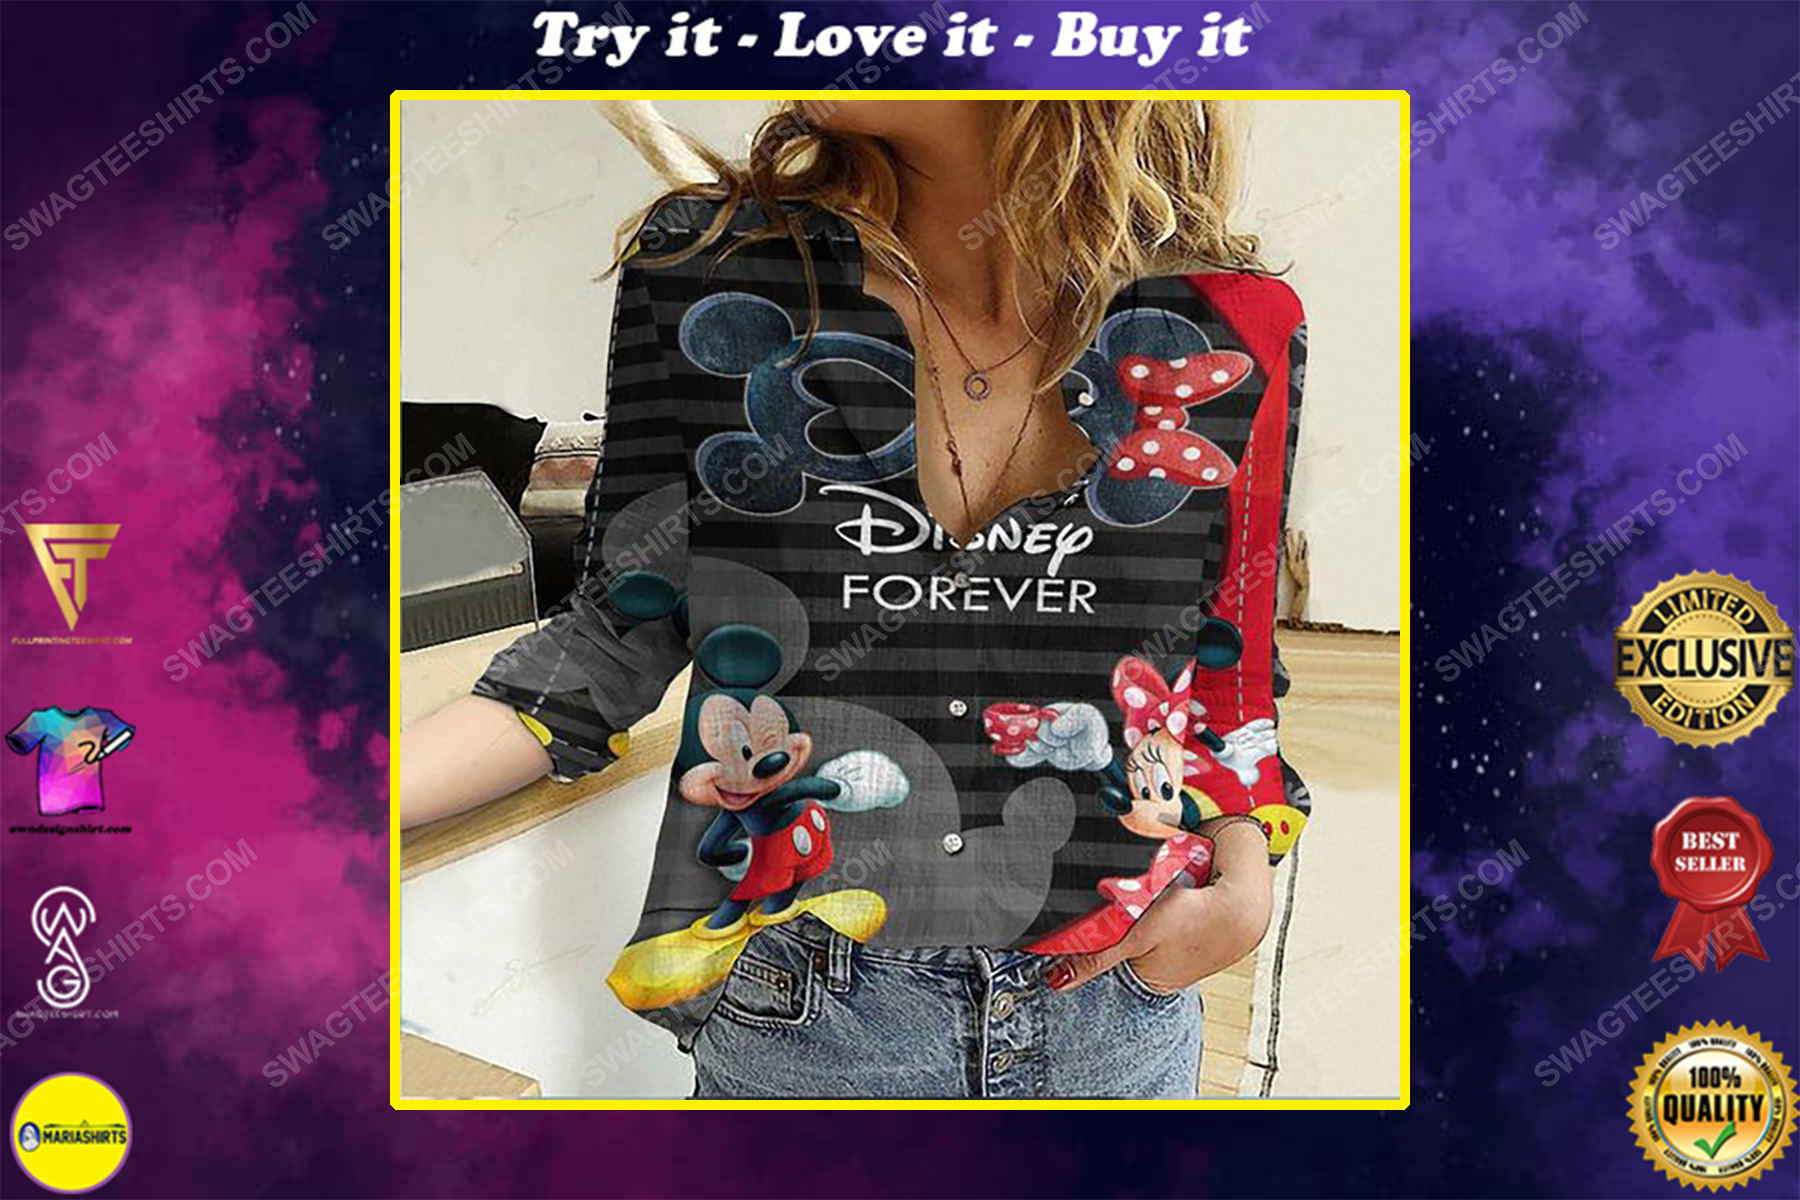 Disney forever fully printed poly cotton casual shirt